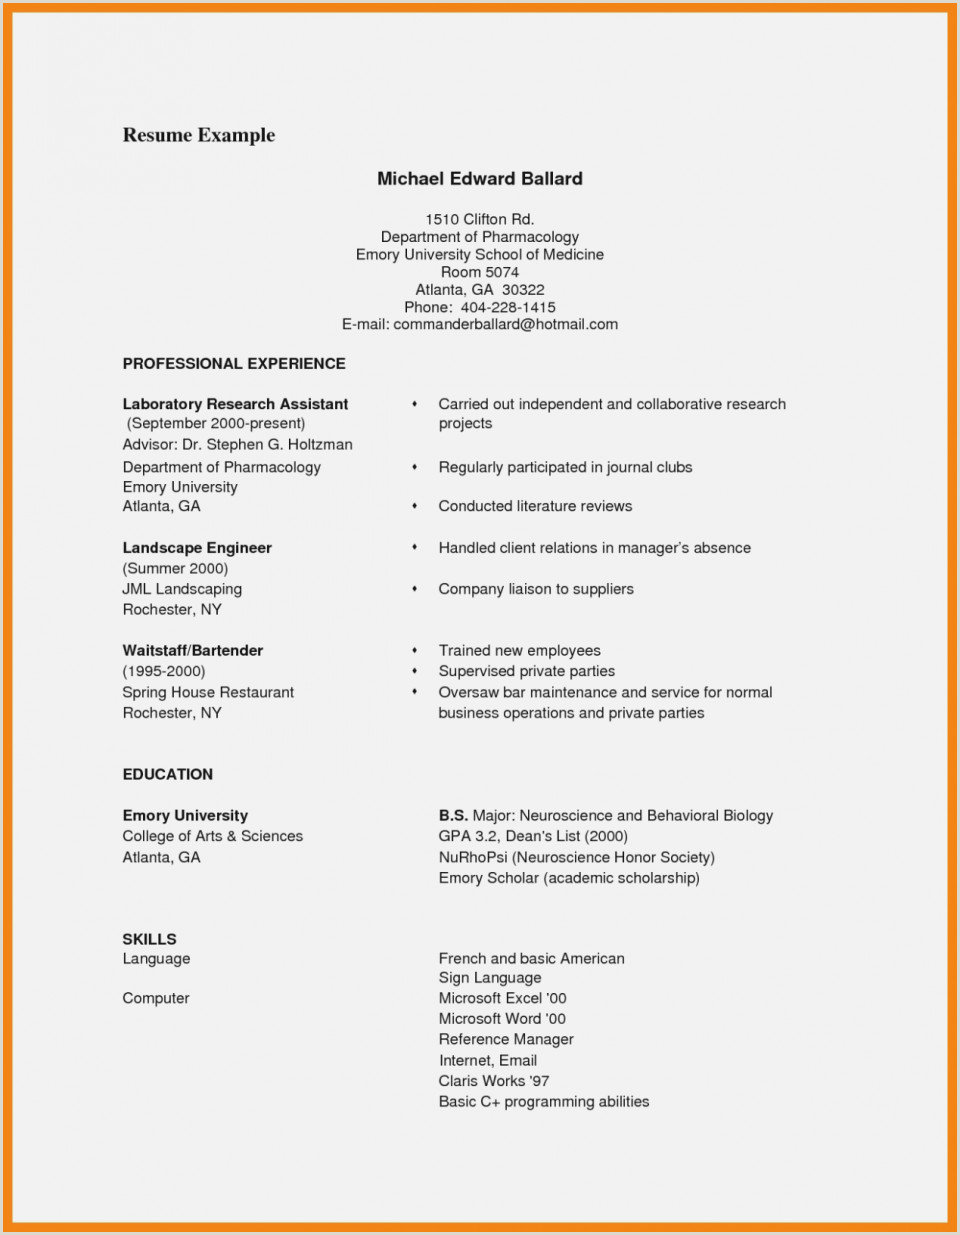 Europass Cv format for Scholarship Application Pdf Resume Template Pdf Professional Sample Sales Lady Ea